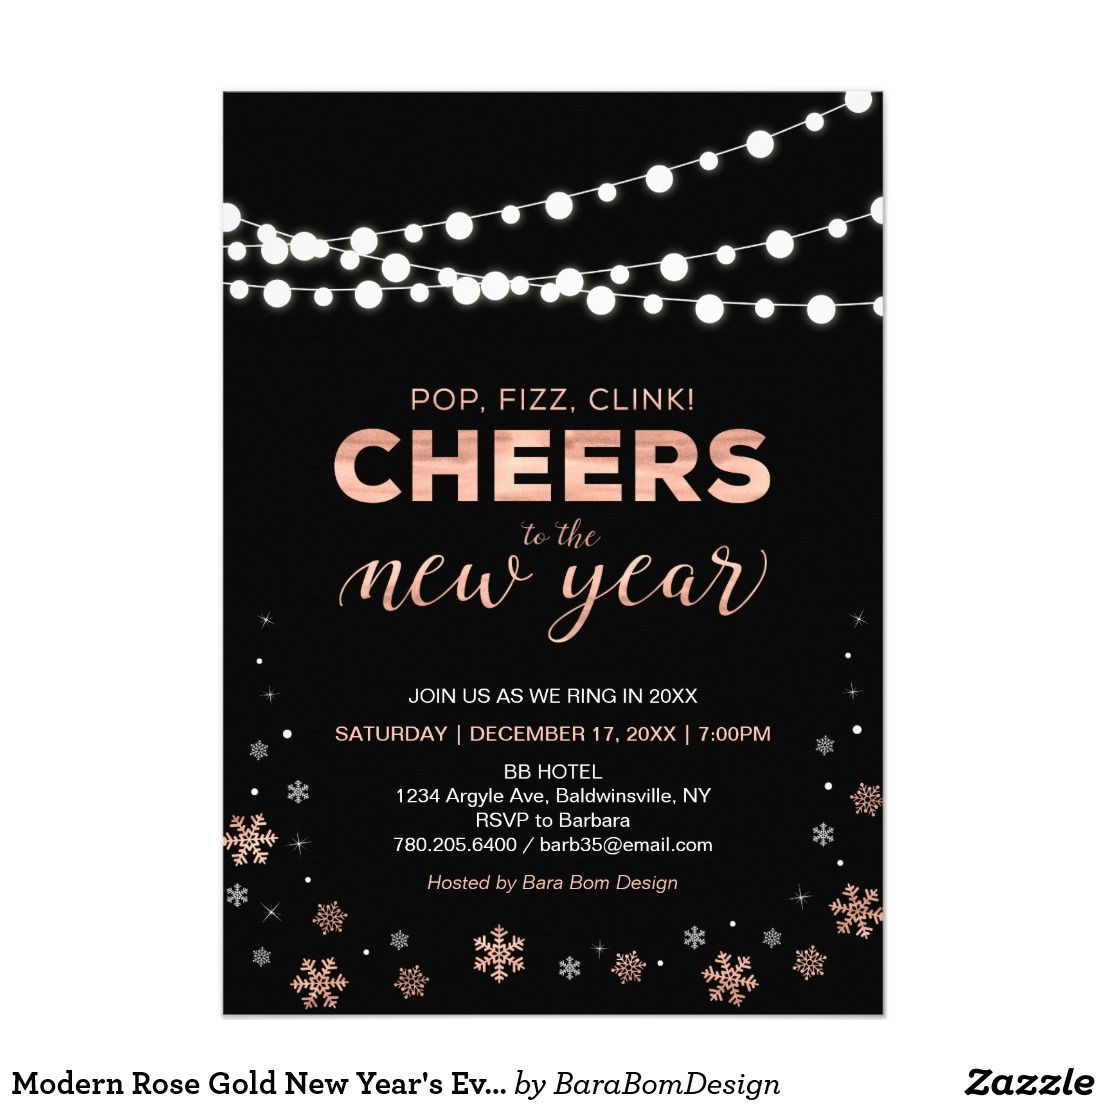 Modern Rose Gold New Years Eve Party Invitation Zazzle Com Corporate Holiday Party Invitations New Years Eve Invitations Holiday Party Invitations